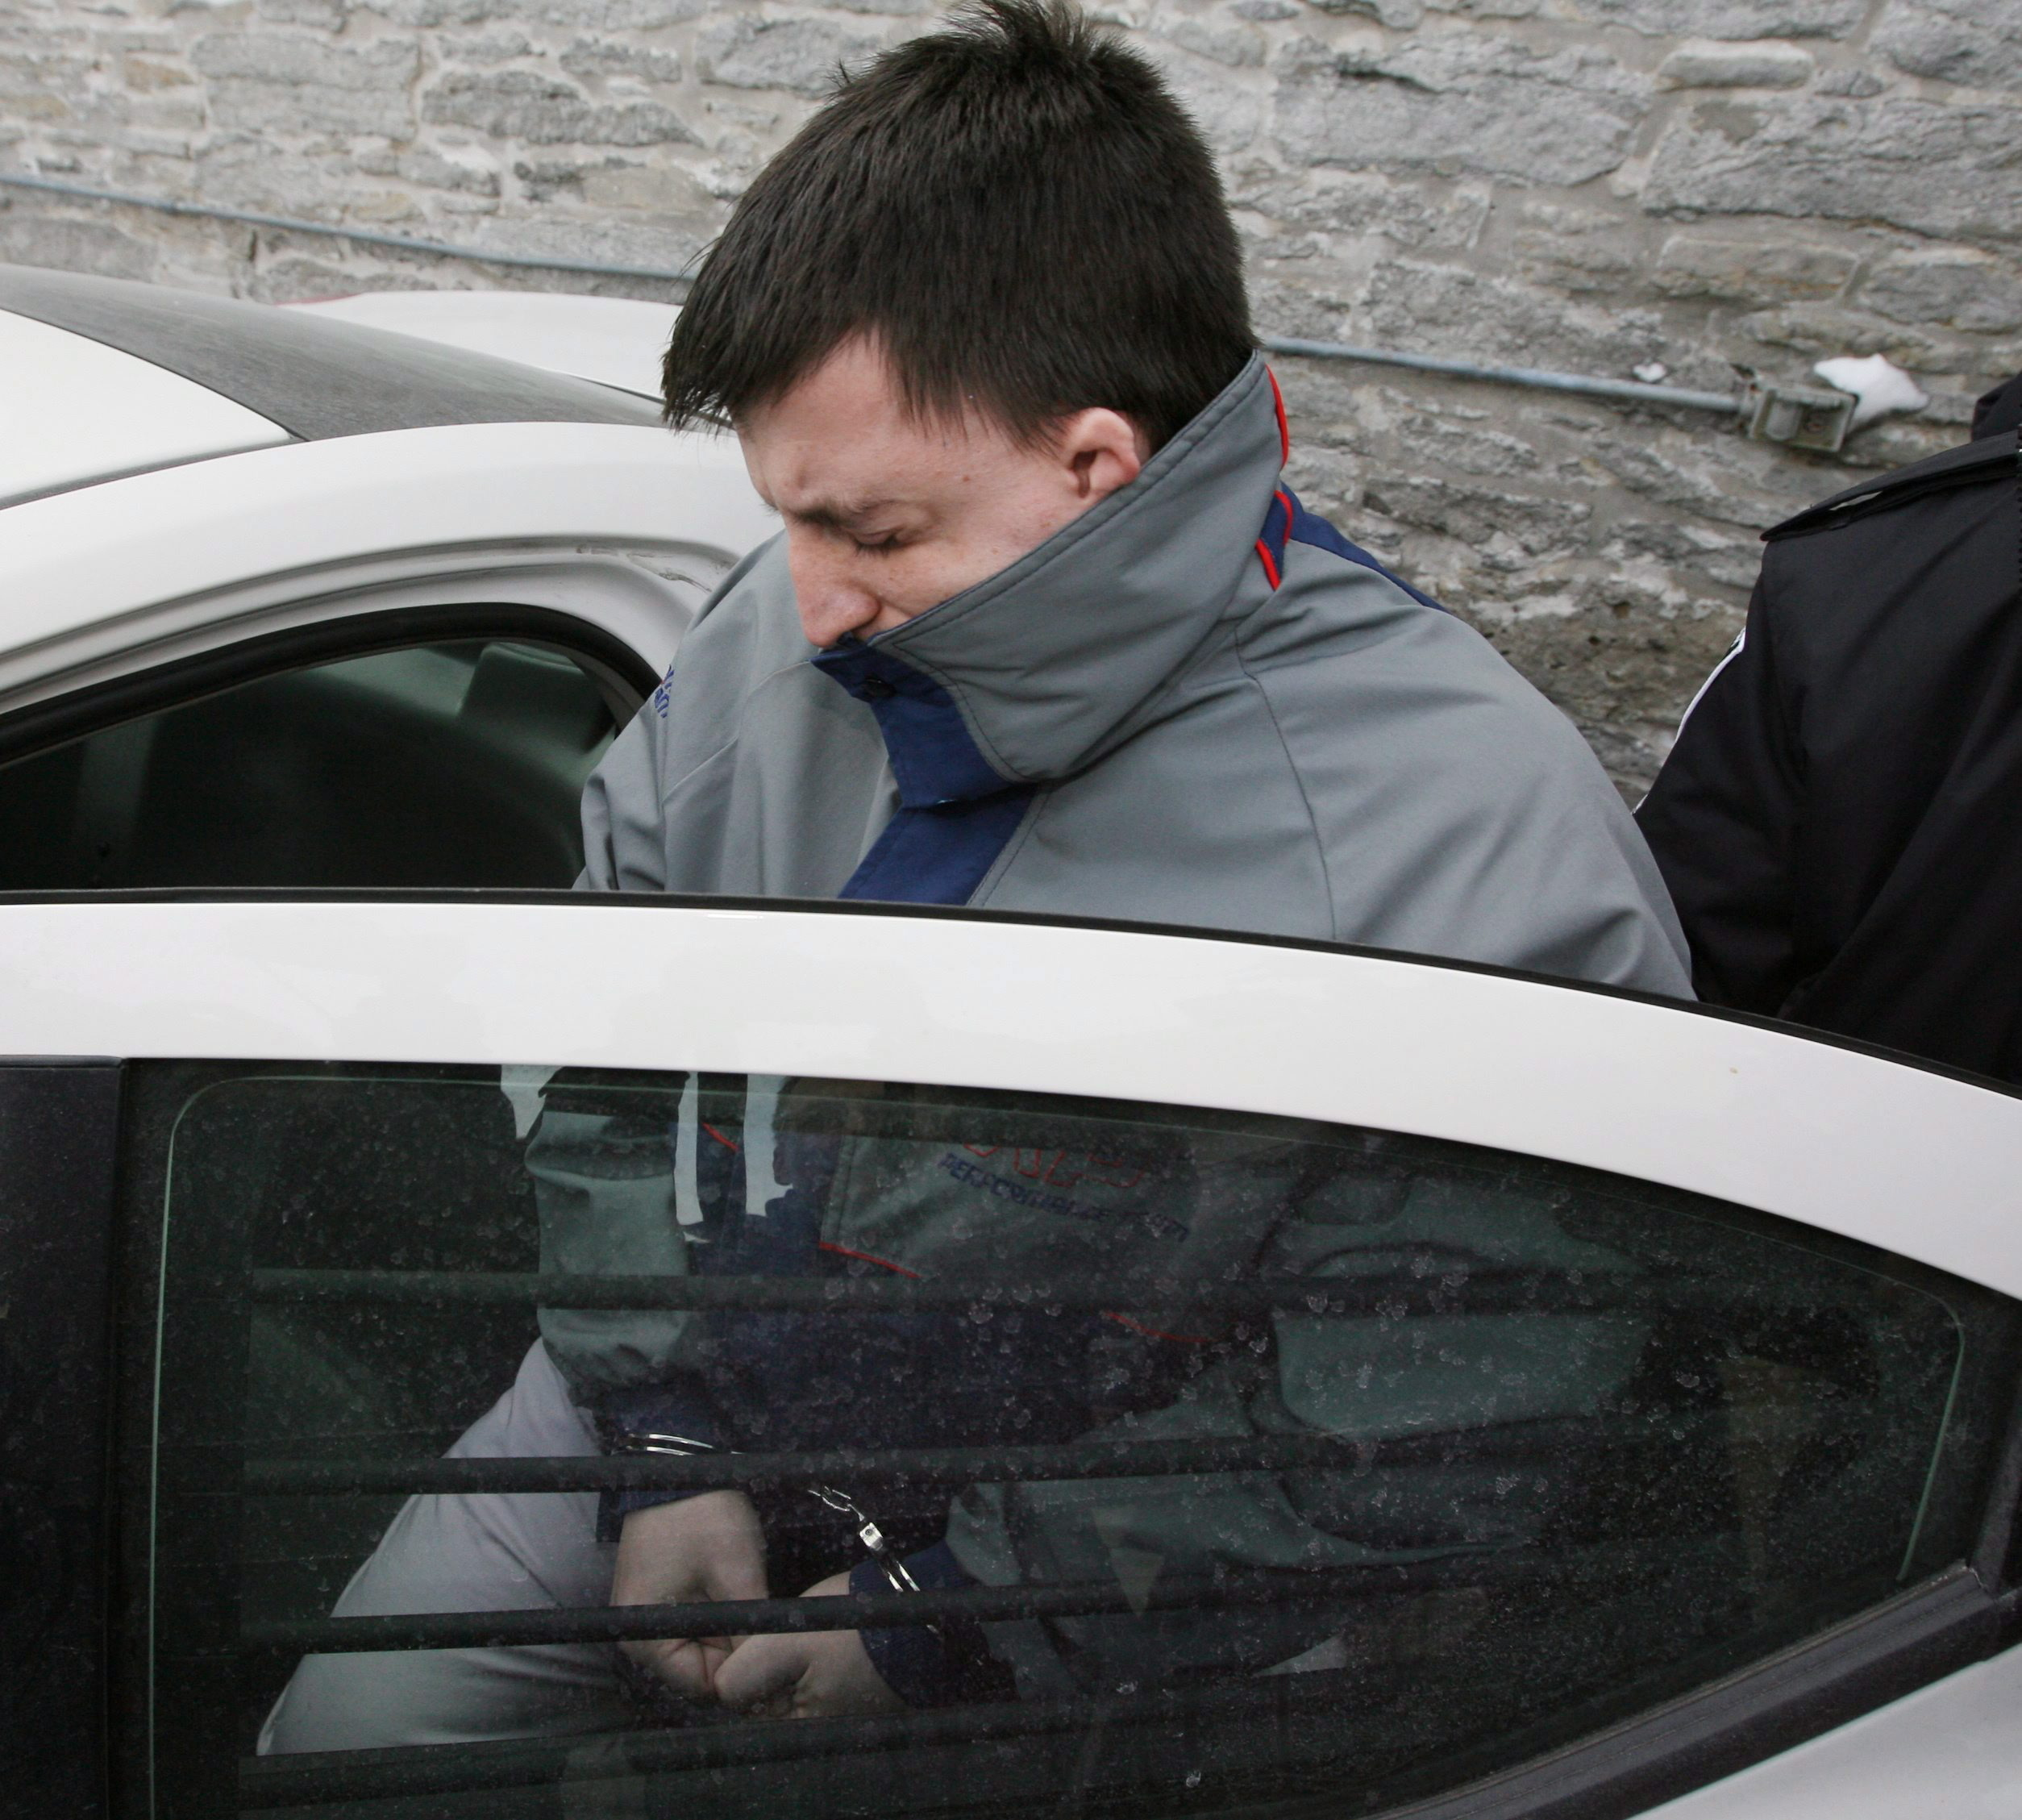 Stanley Tippett gets into a car outside the Superior Court of Justice in Peterborough, Ont., on Dec. 23, 2009 after being handed a guilty verdict in the kidnap and sexual assault of a 12-year-old girl. (Peter Redman/The Canadian Press)